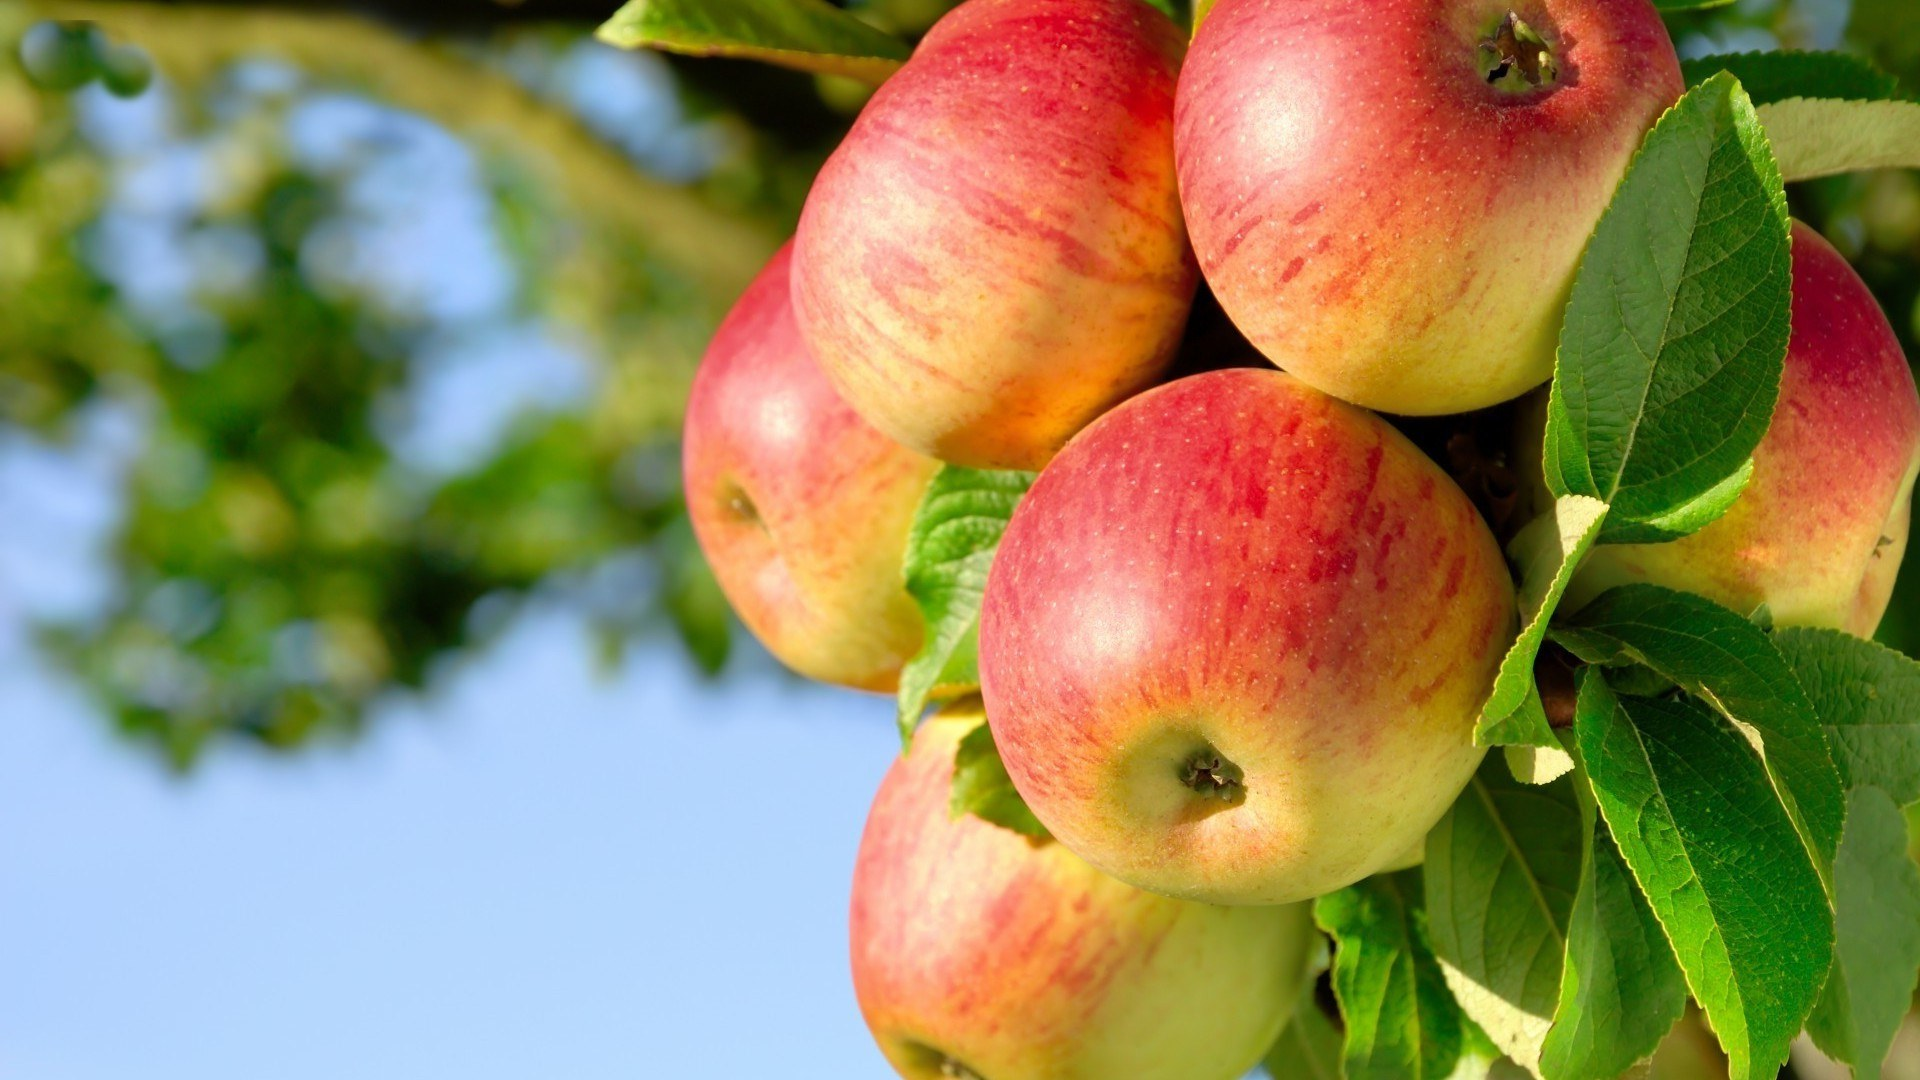 Apple Tree Widescreen Hd Wallpapers Free Download Apple Images